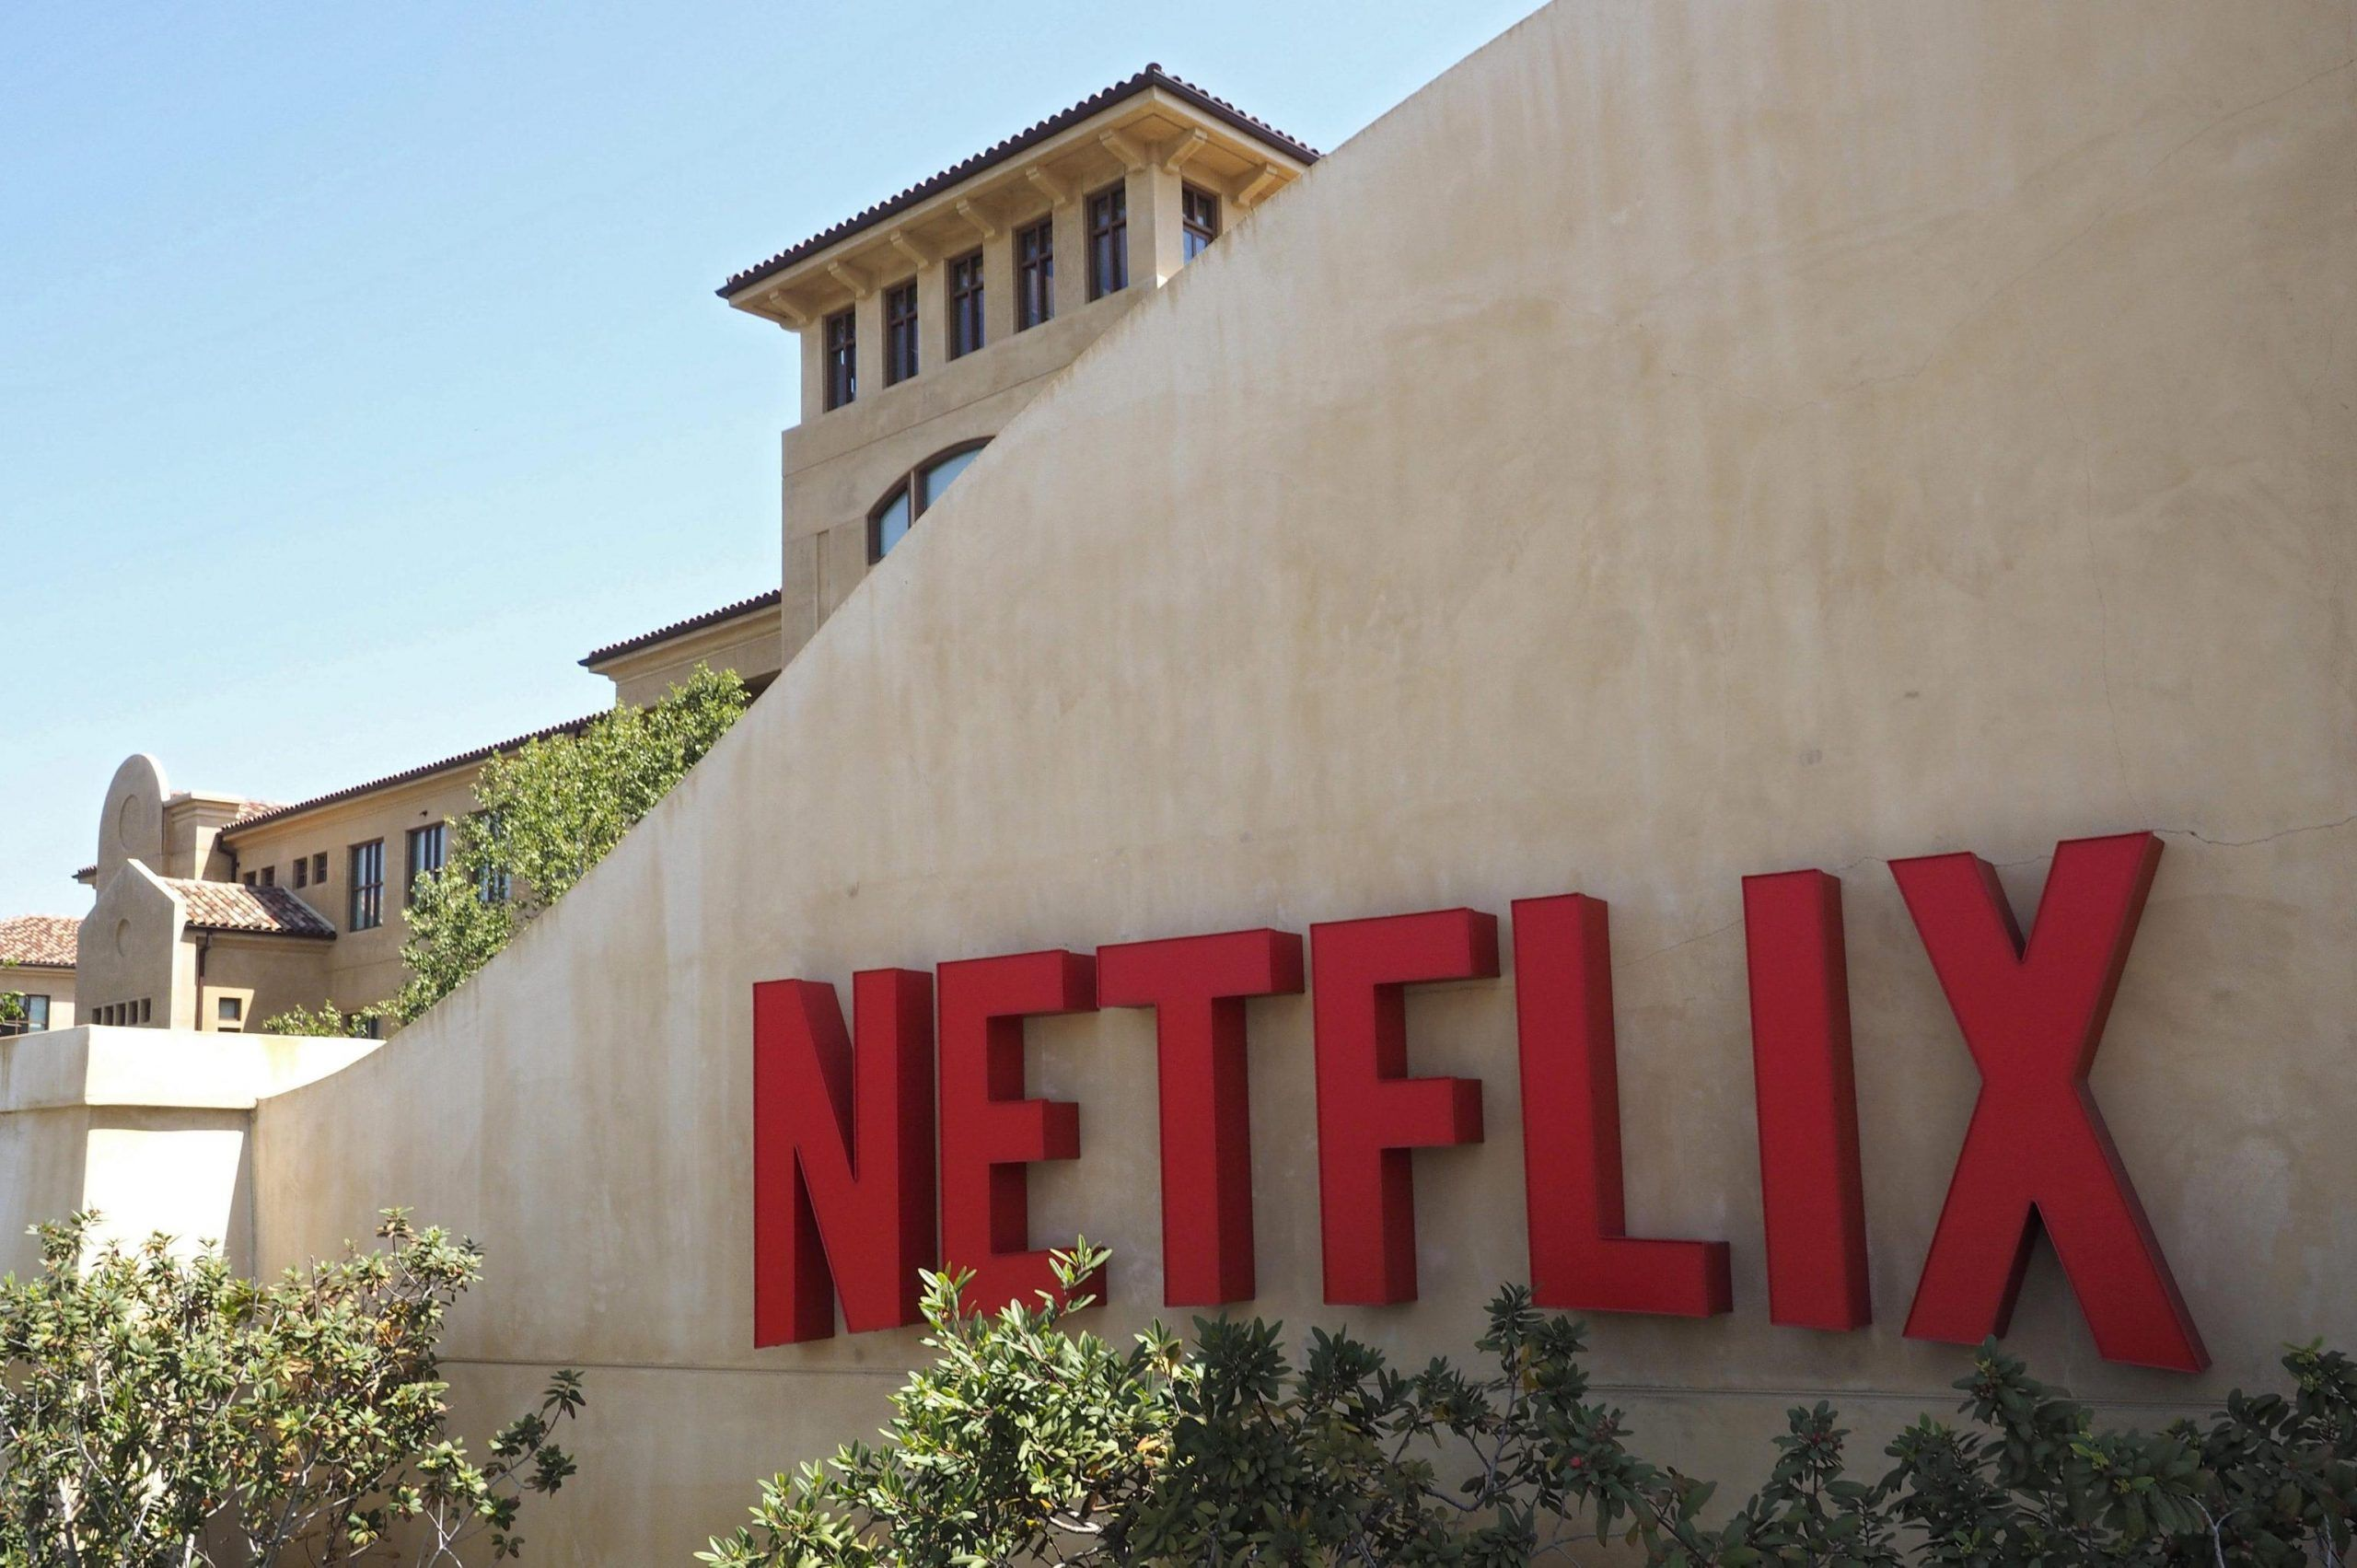 Netflix to release their 4th quarter results on 19 January 2016